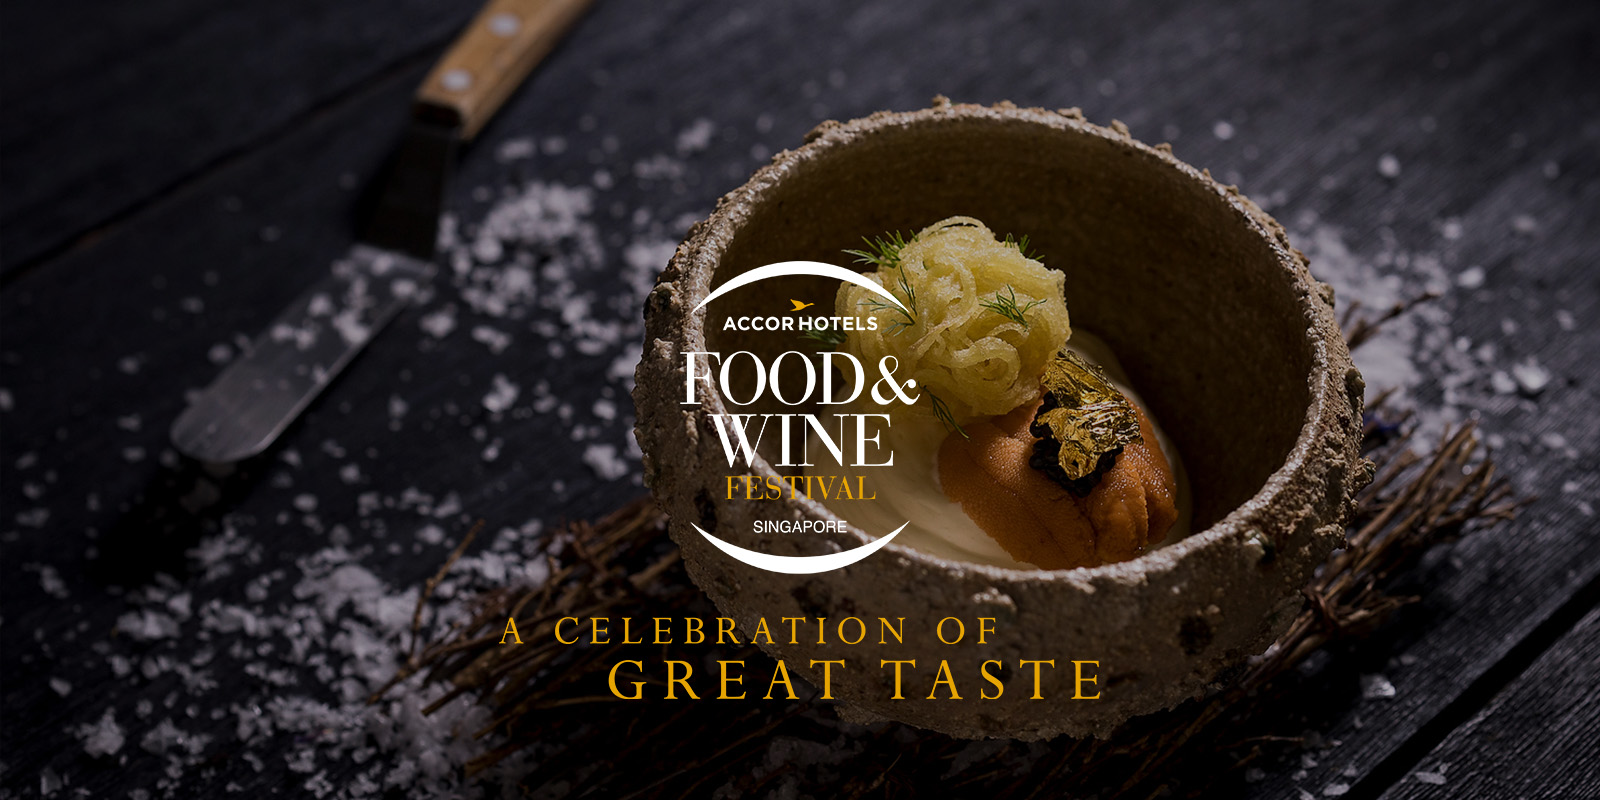 AccorHotels Food Festival